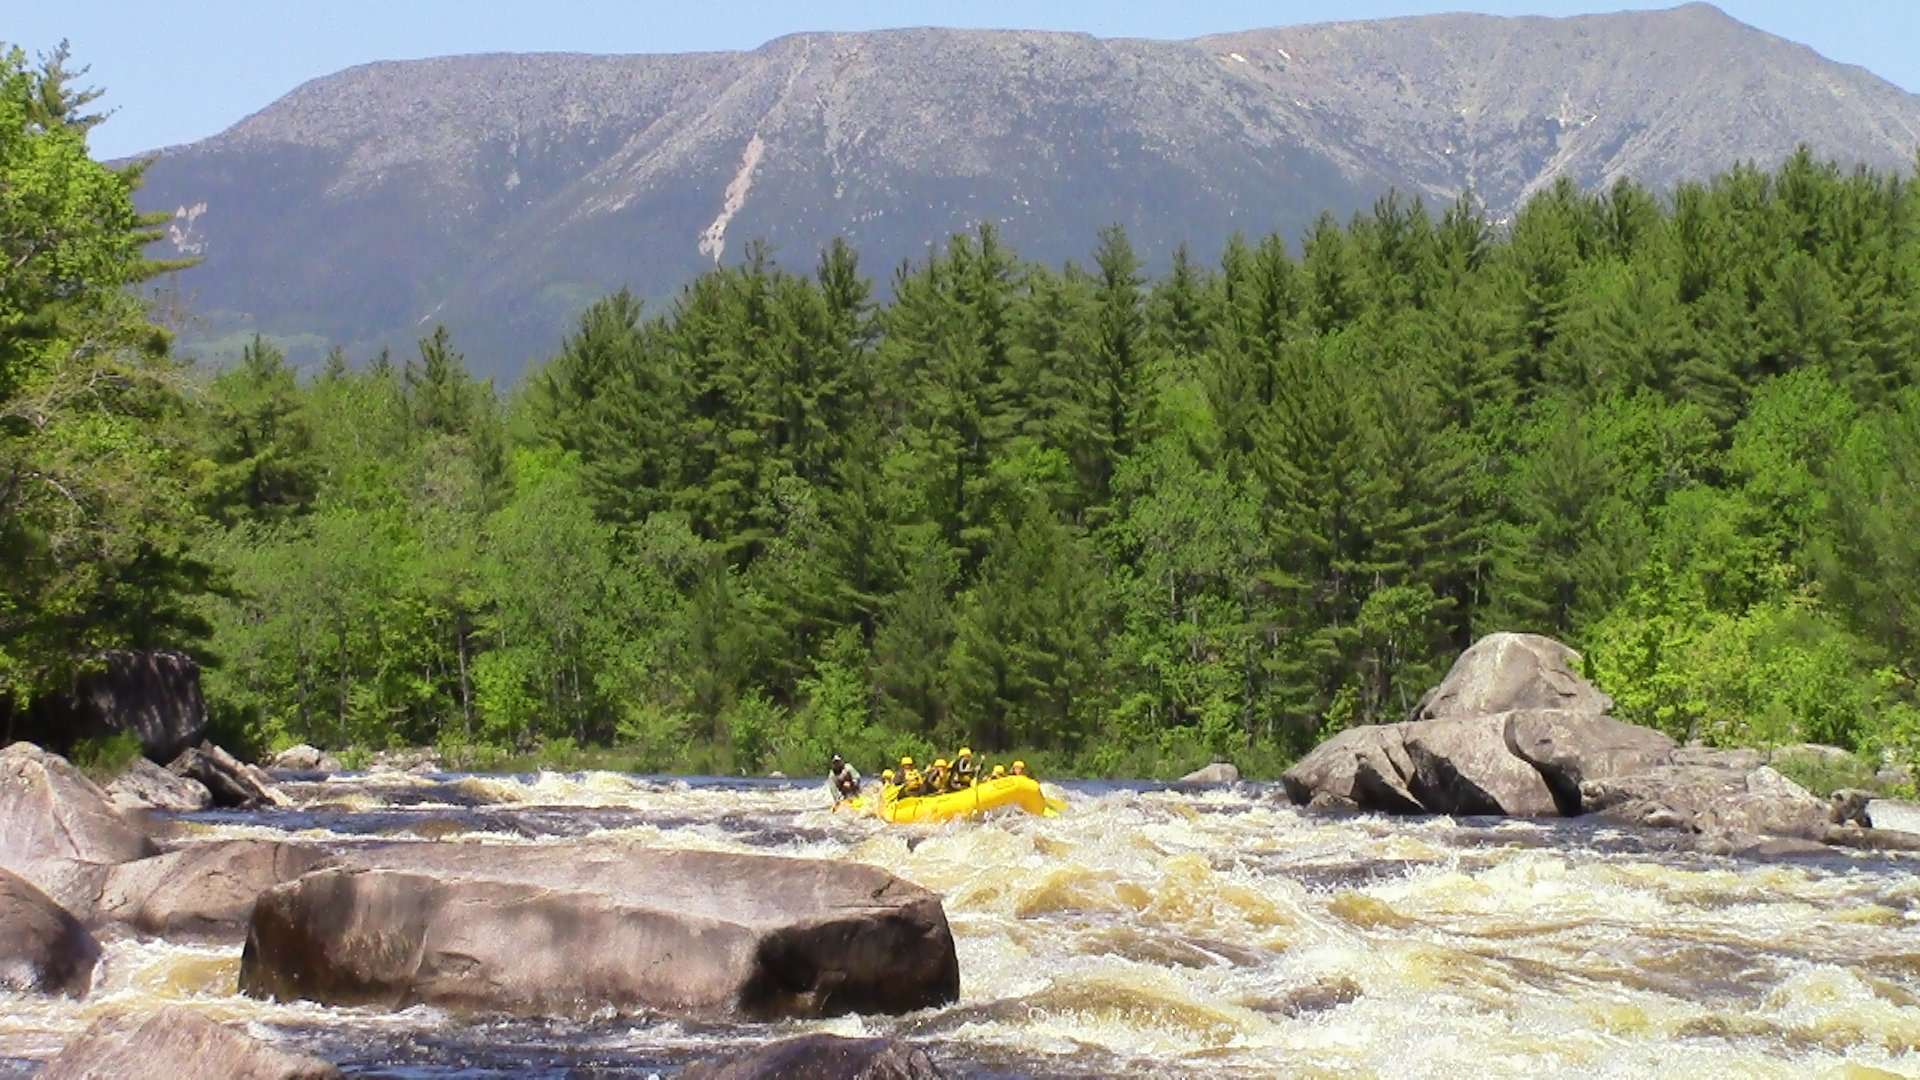 Scenery and Adventure on the Penobscot River